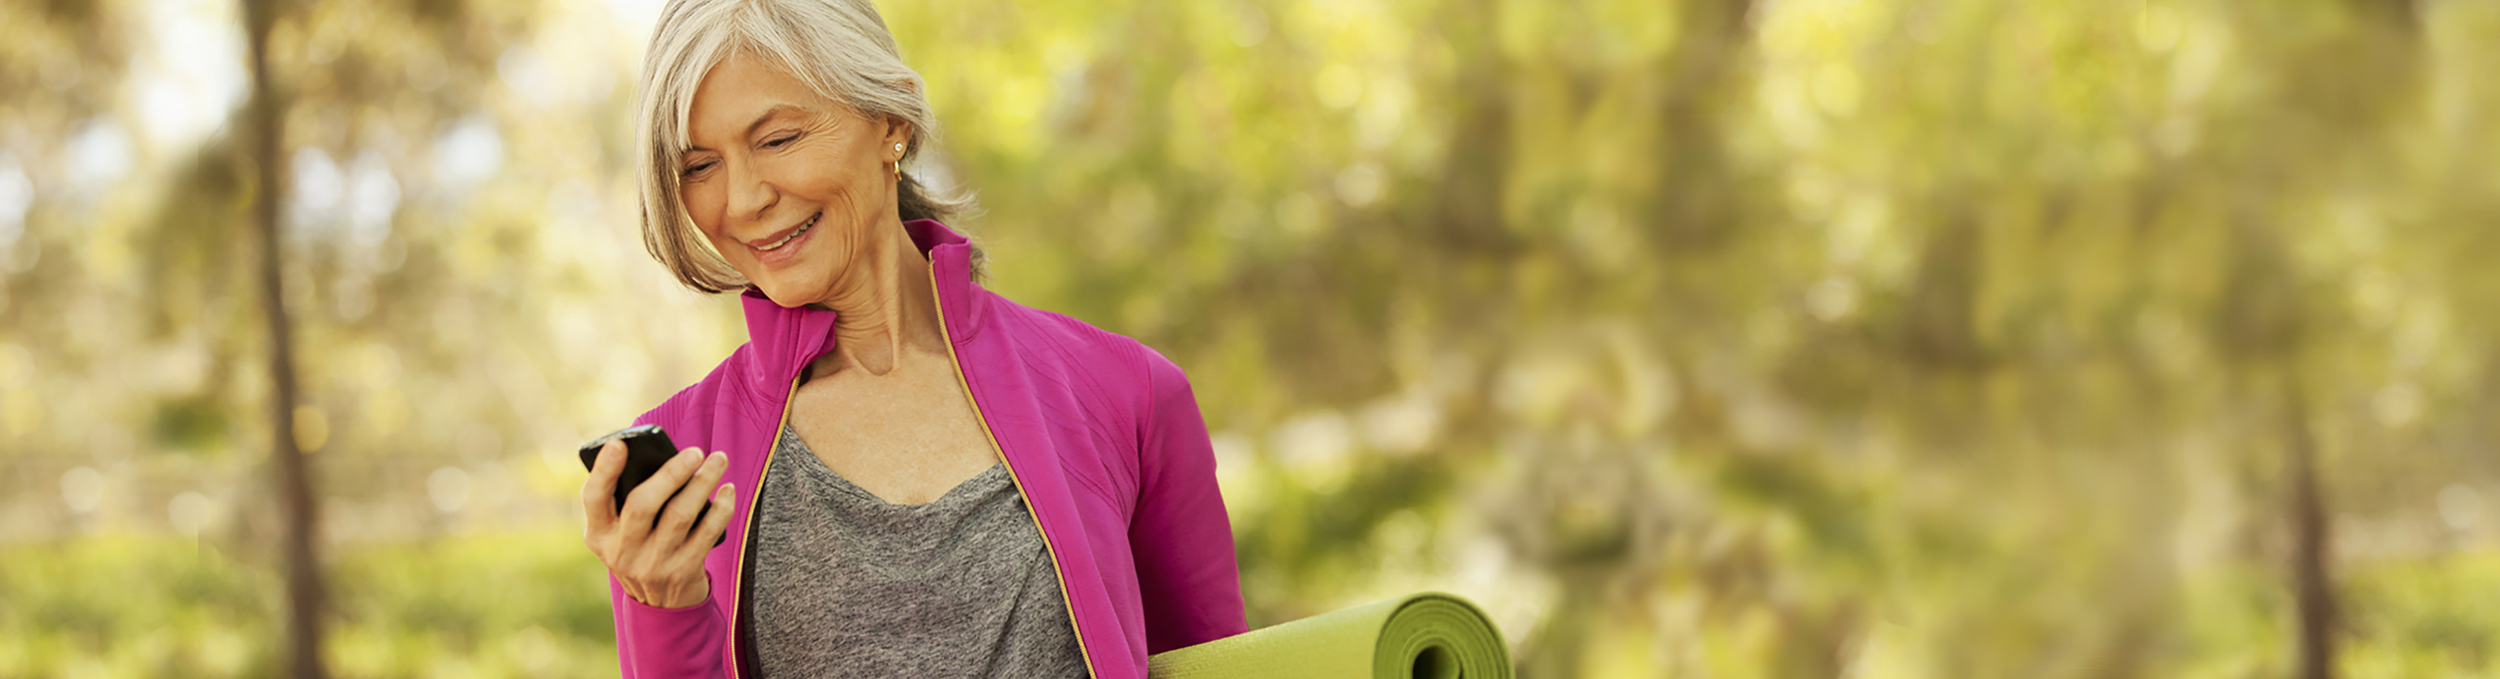 MyAgileLife_web banner_2500x679_Senior Woman w Yoga Mat on Phone